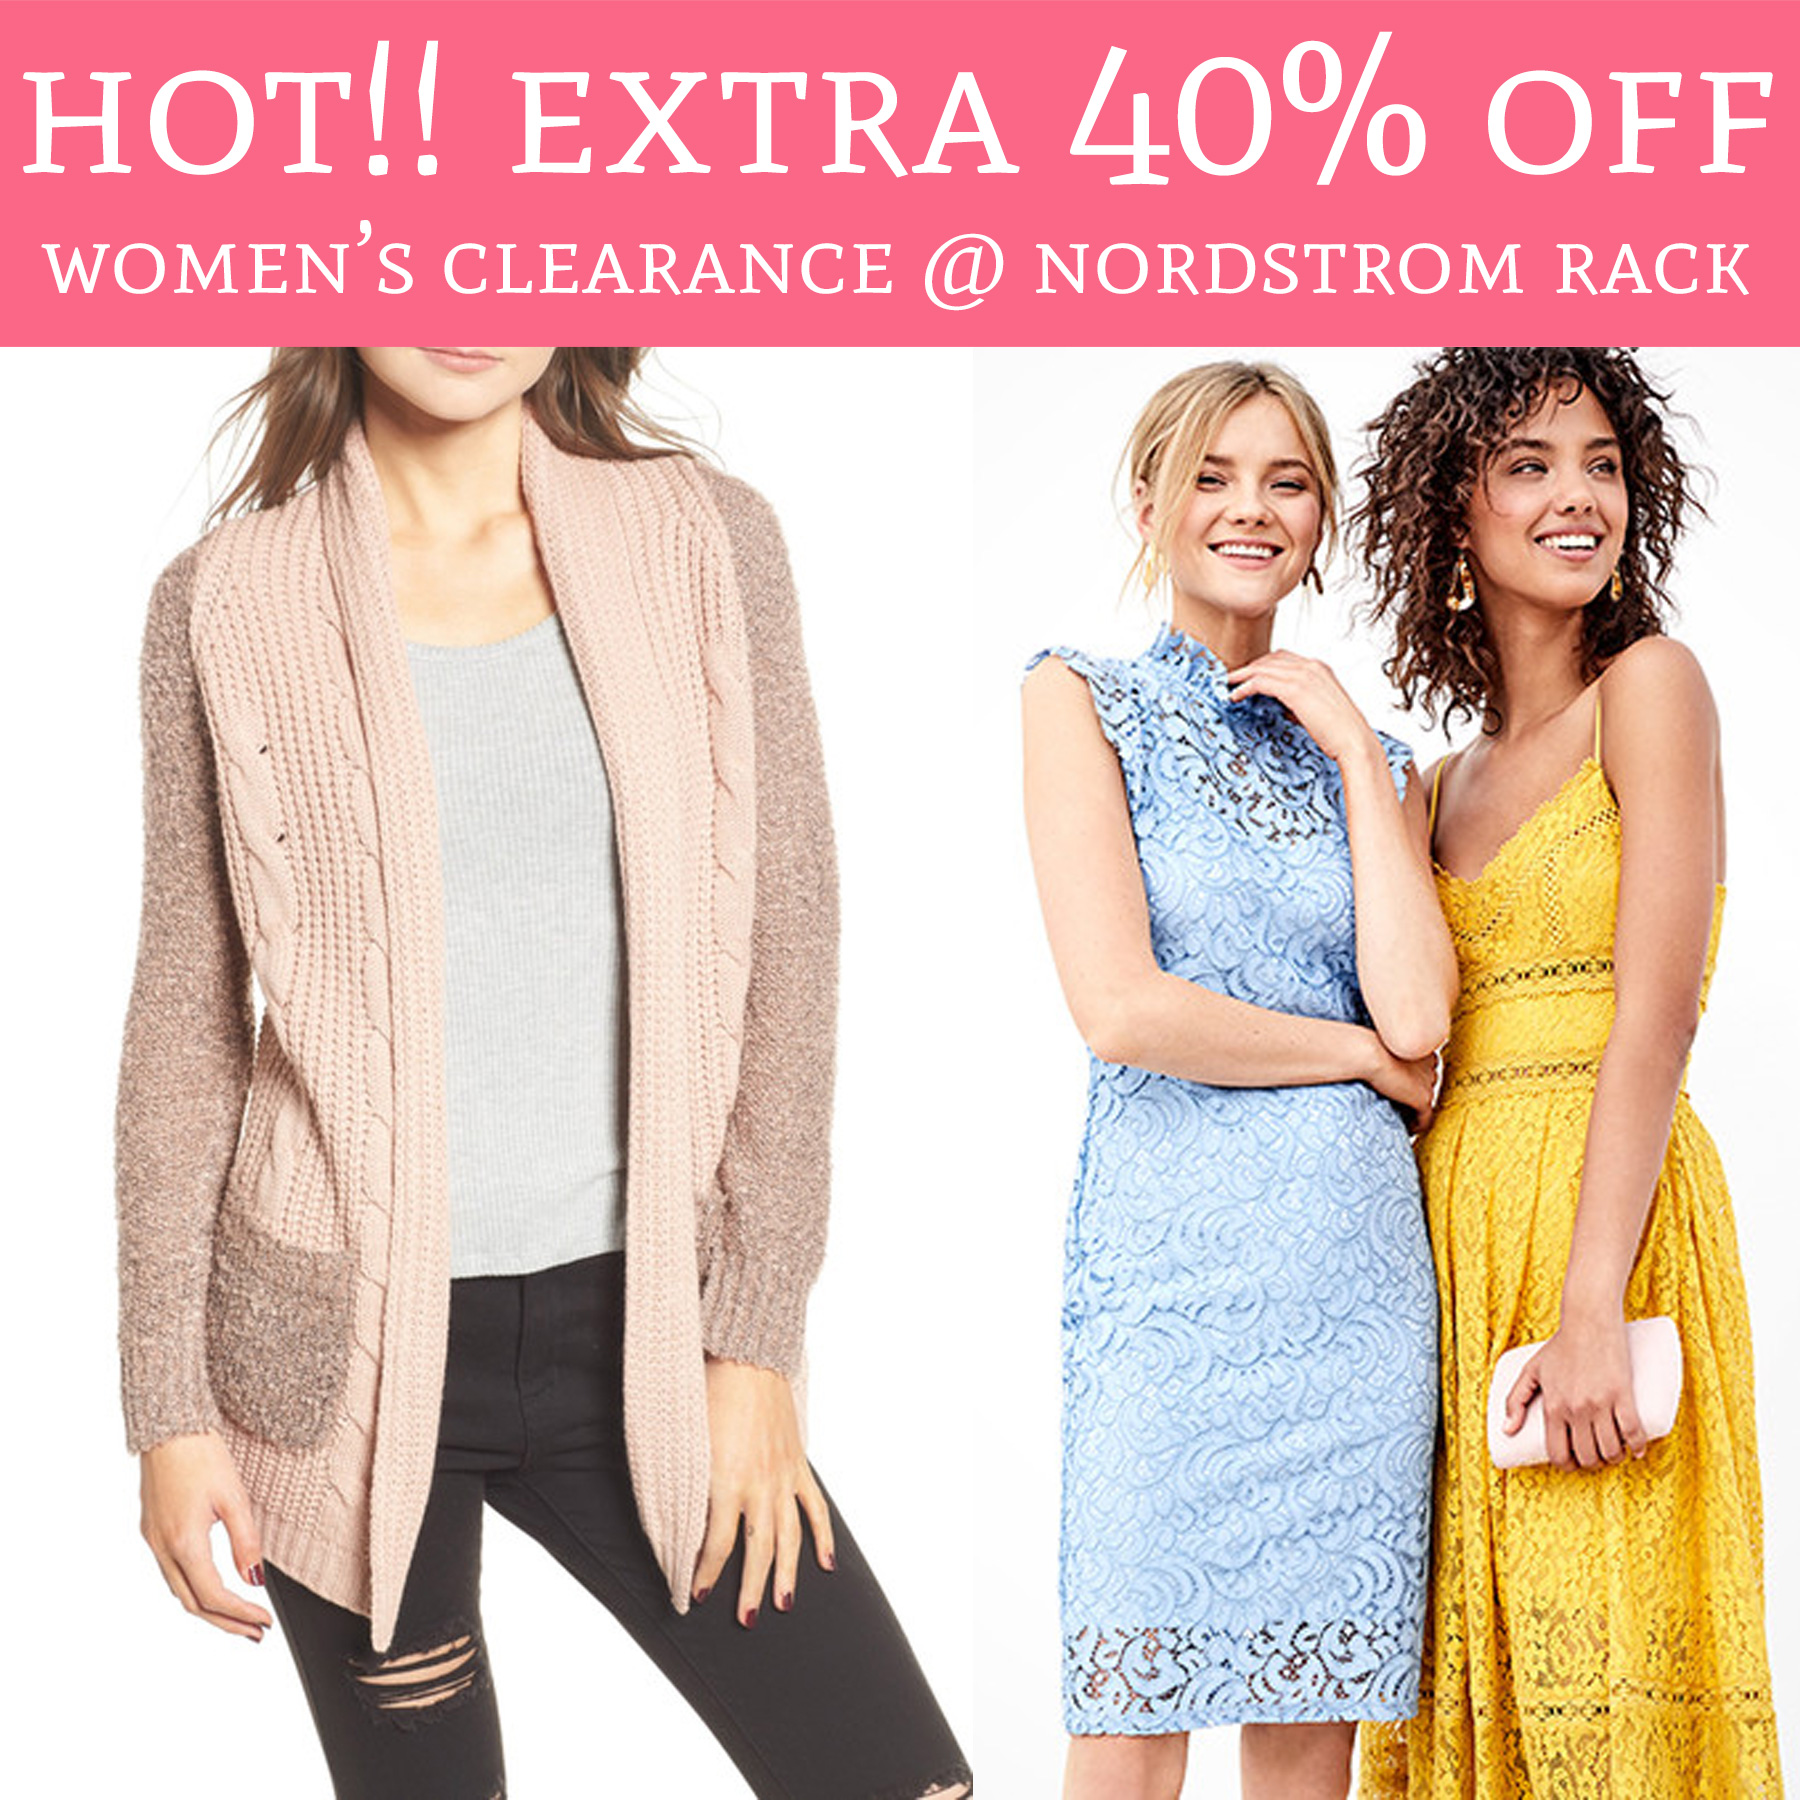 e6c8beb45b39 You will want to run for this deal! Head over to NordstromRack.com ...